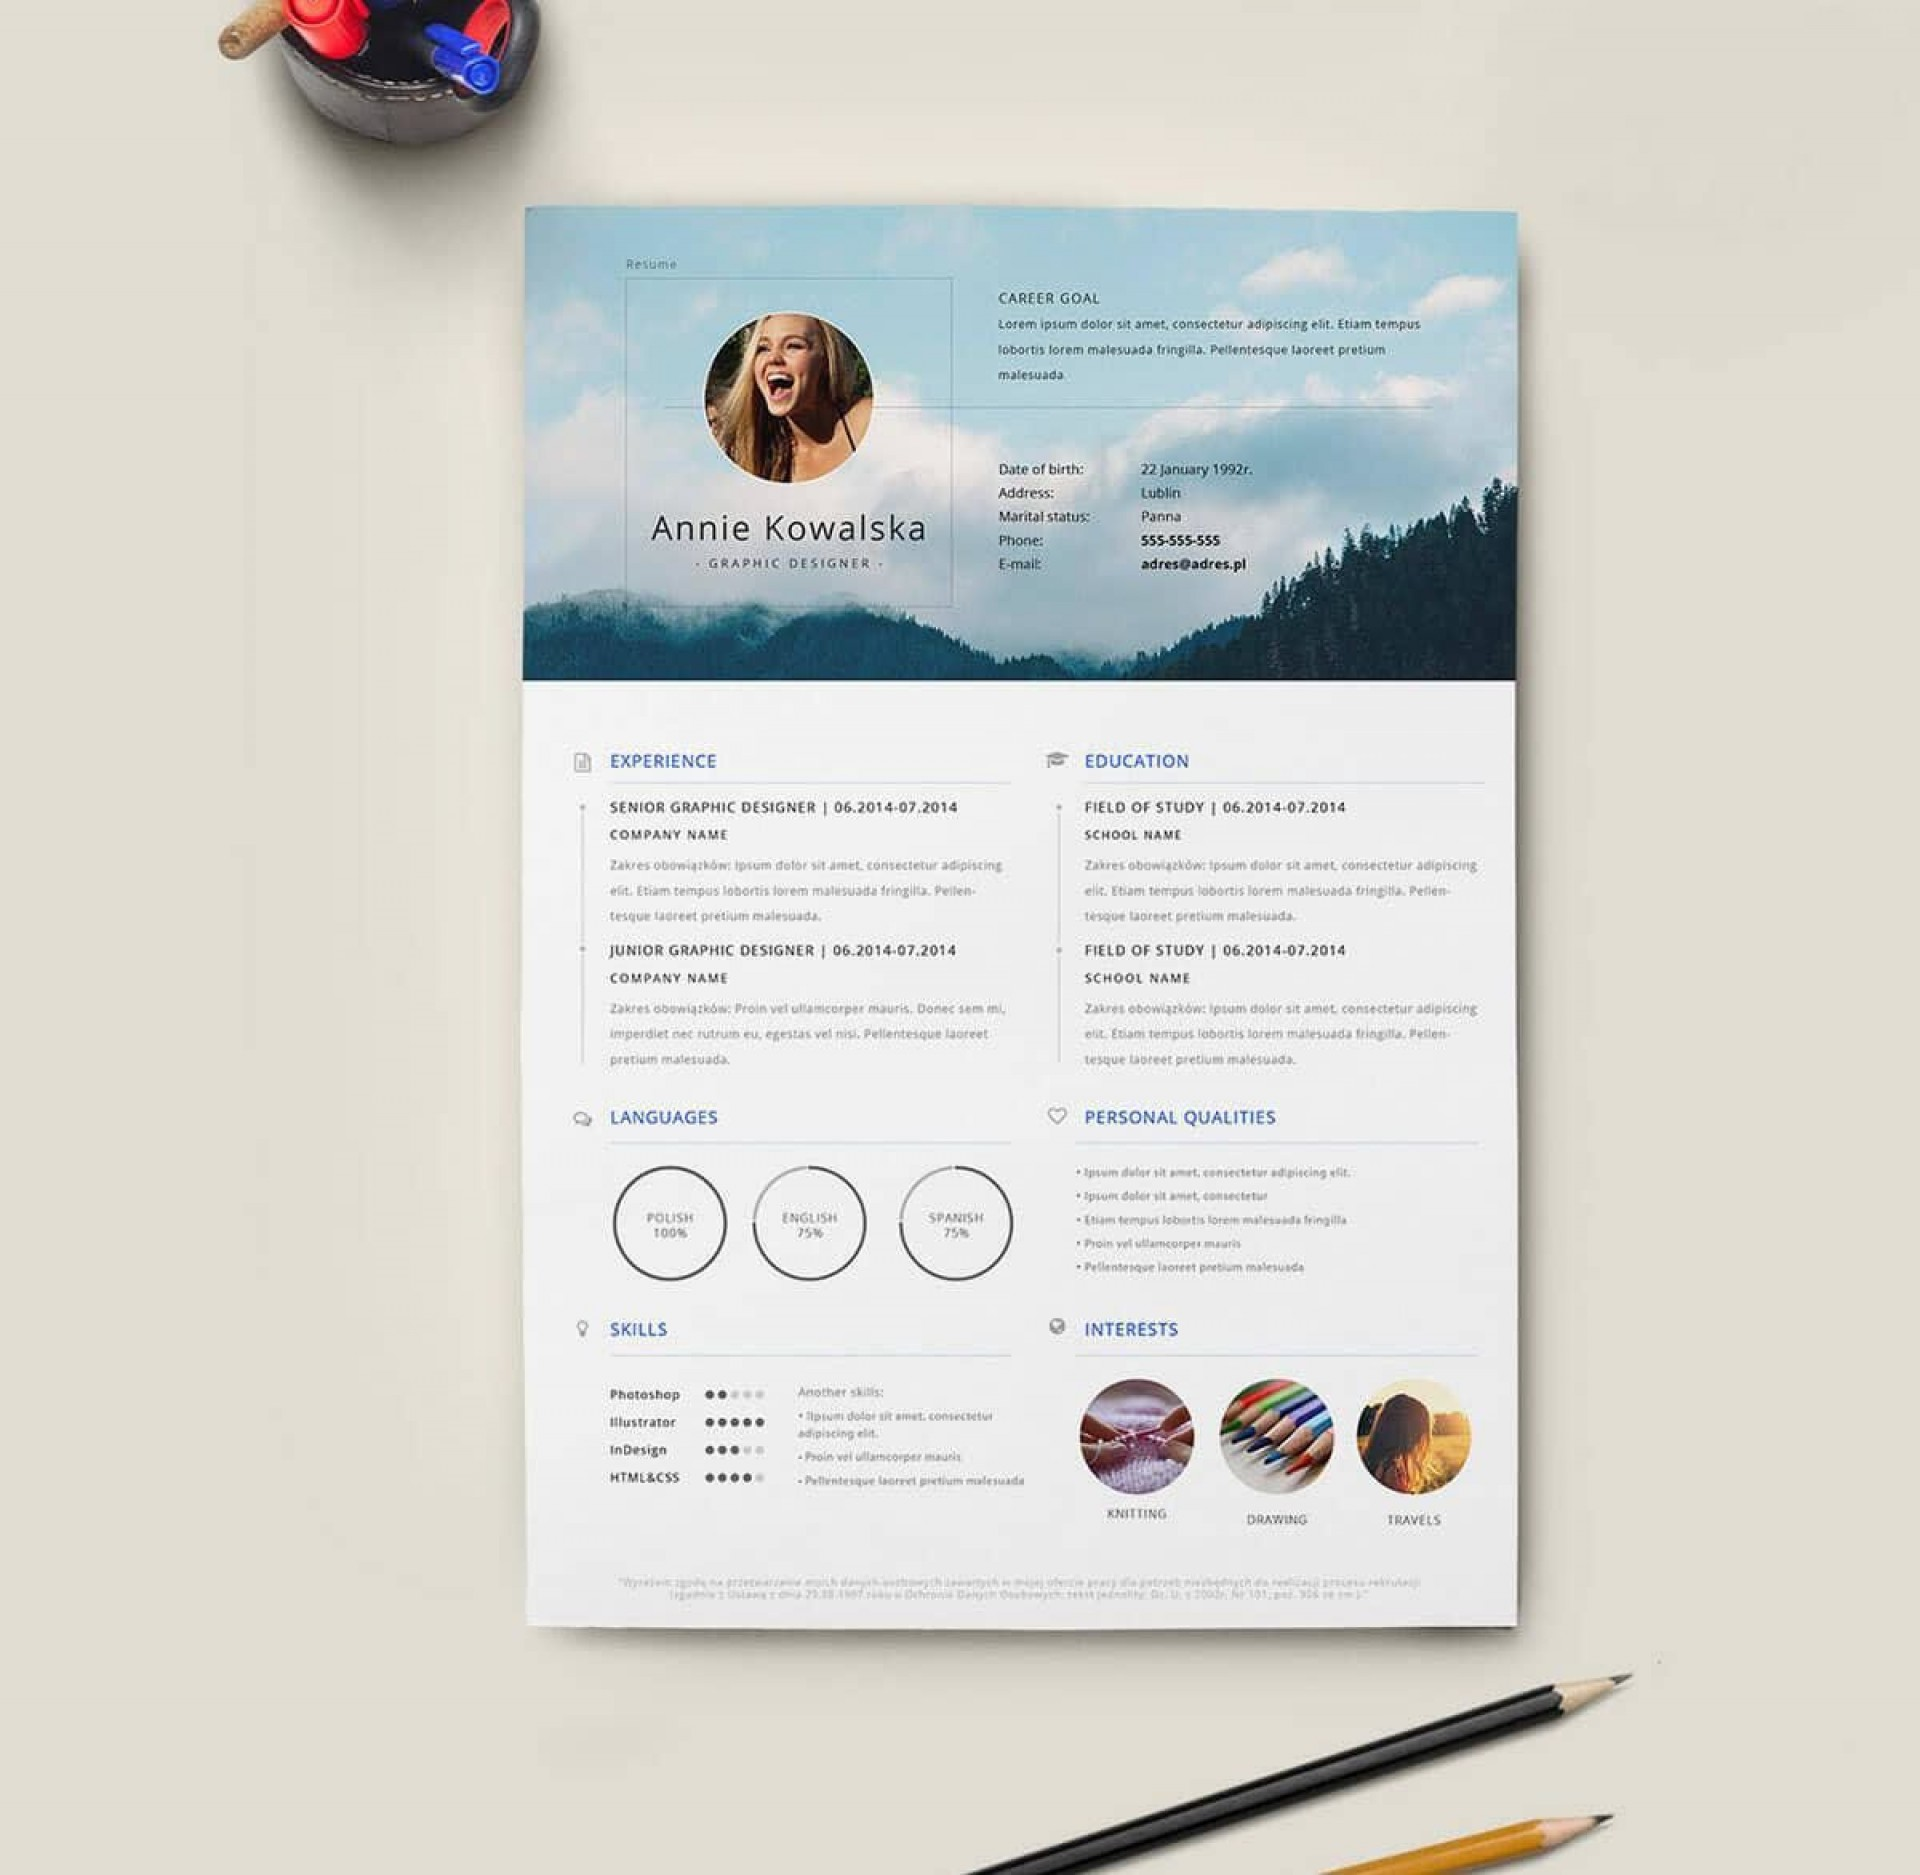 003 Stirring Curriculum Vitae Template Free Inspiration  Download South Africa Format Pdf Sample1920